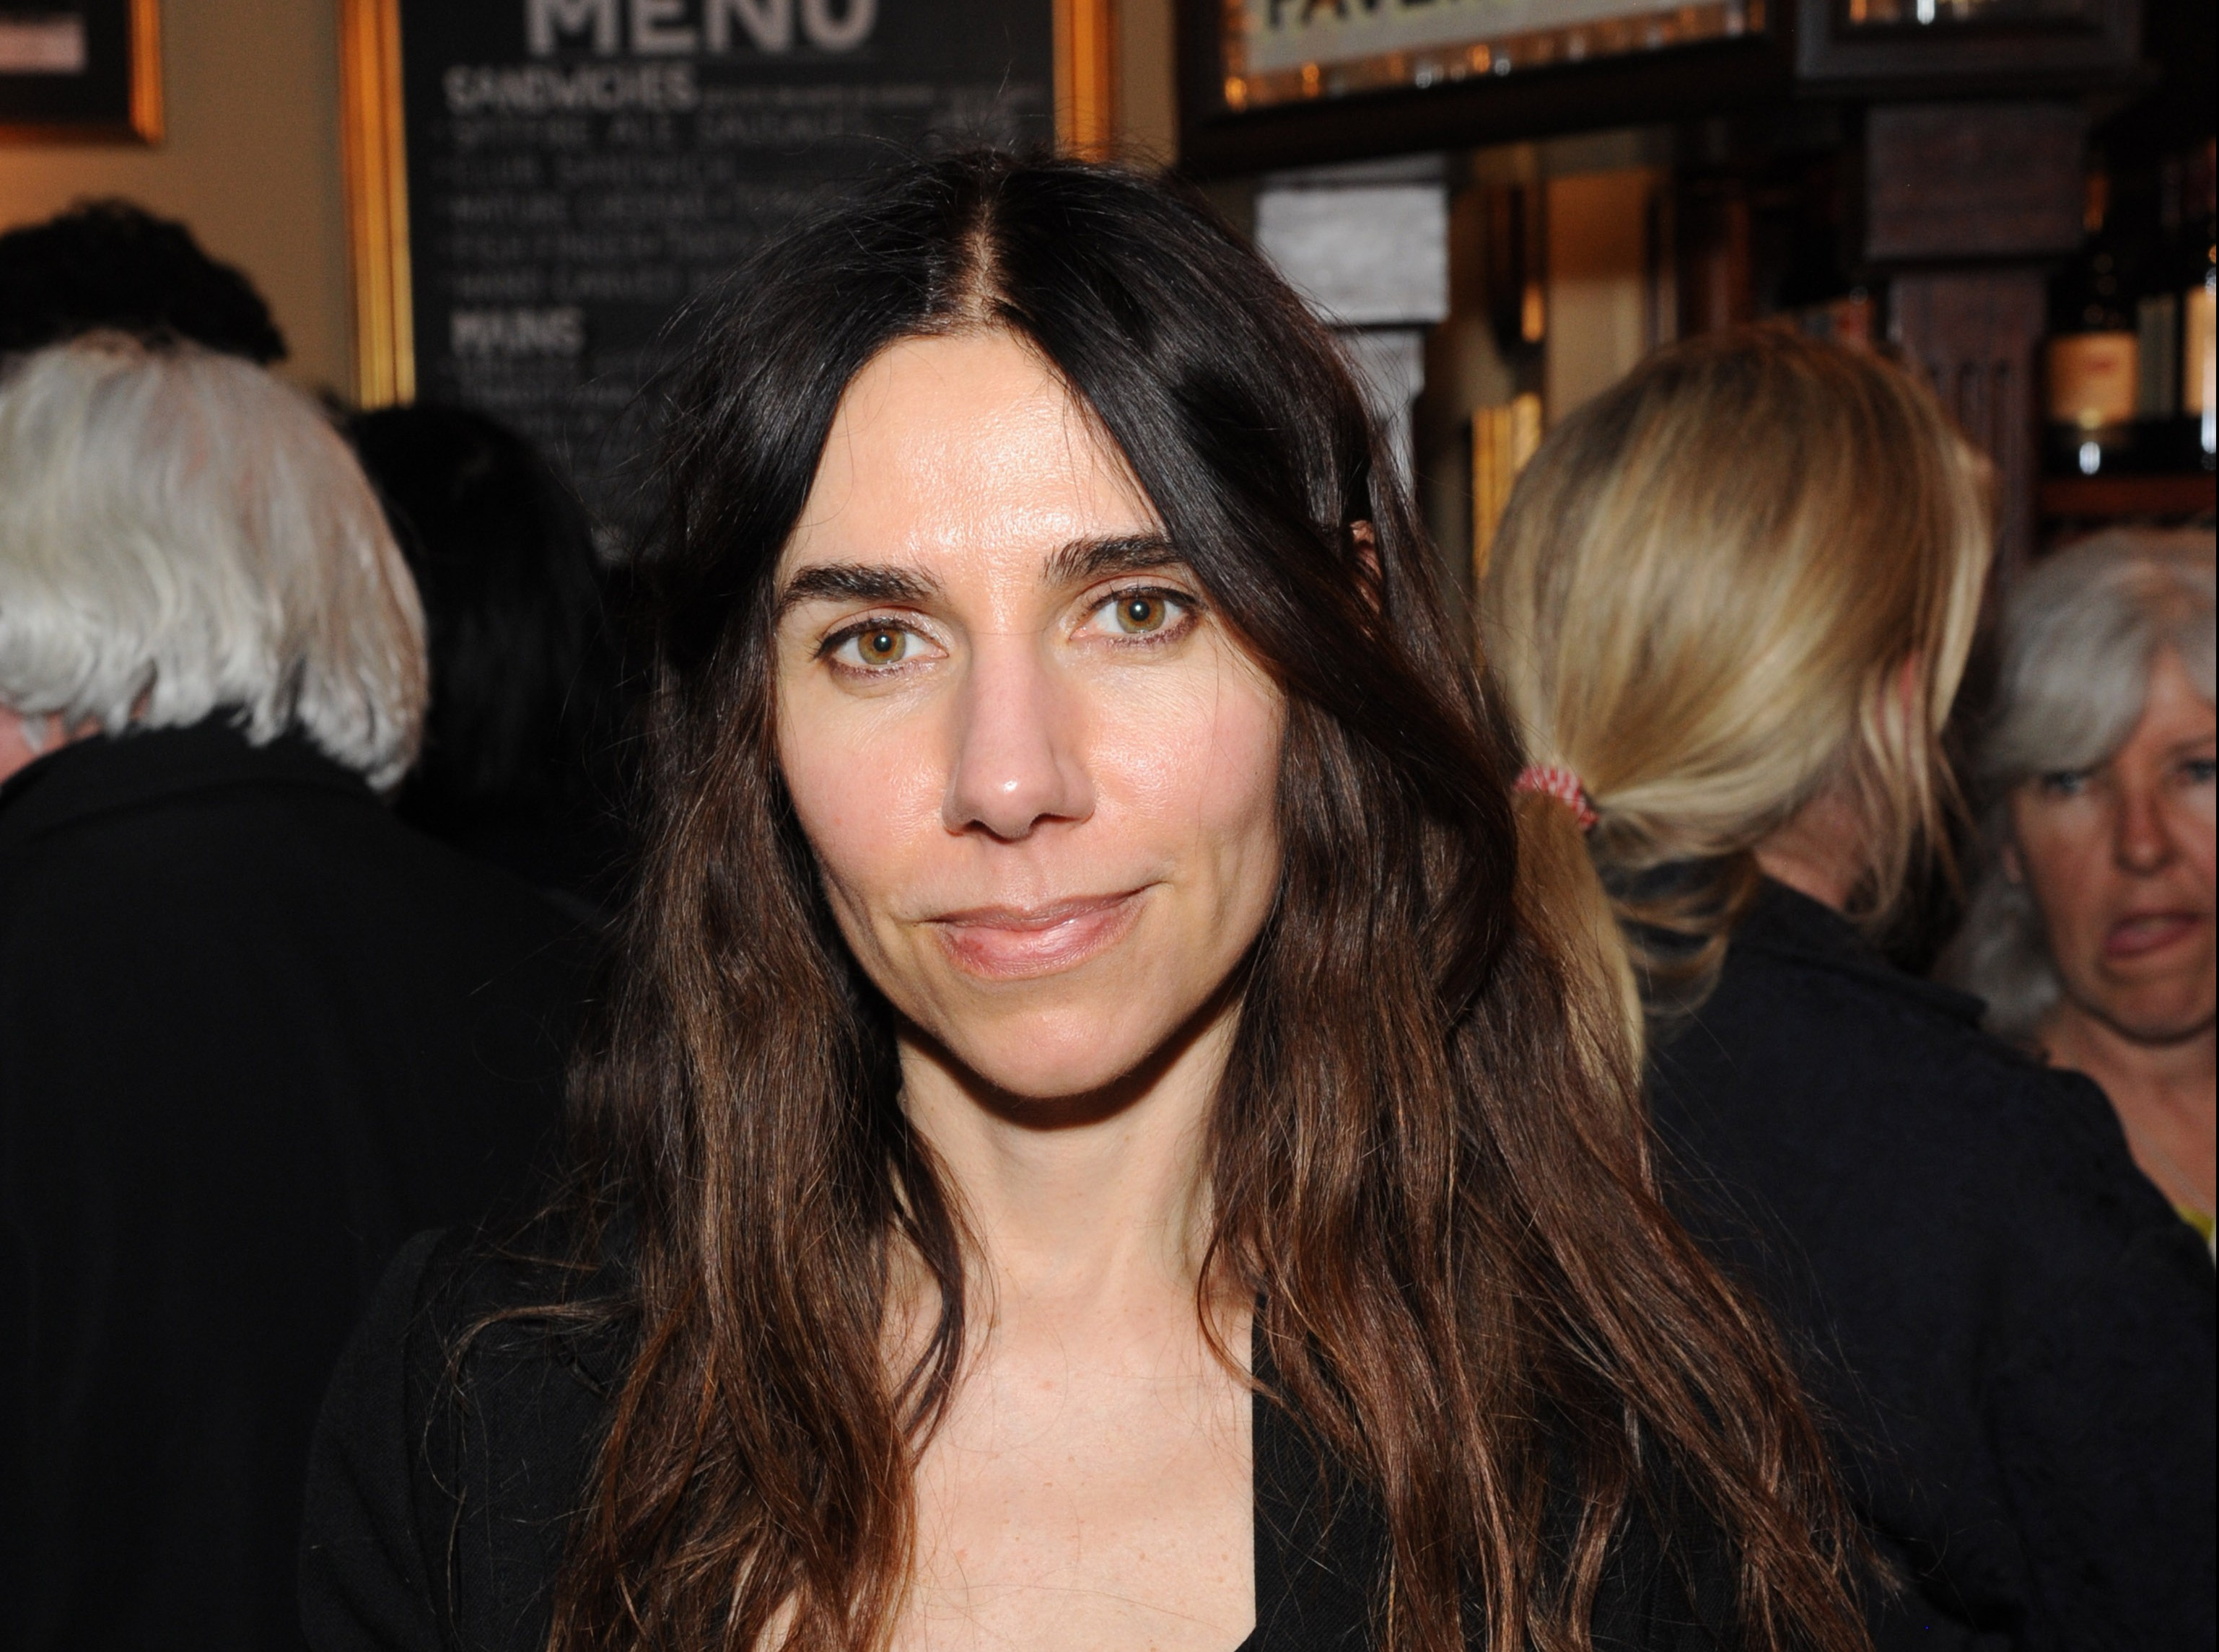 PJ Harvey has been confirmed for Glastonbury Festival – and it's first time in 12 years